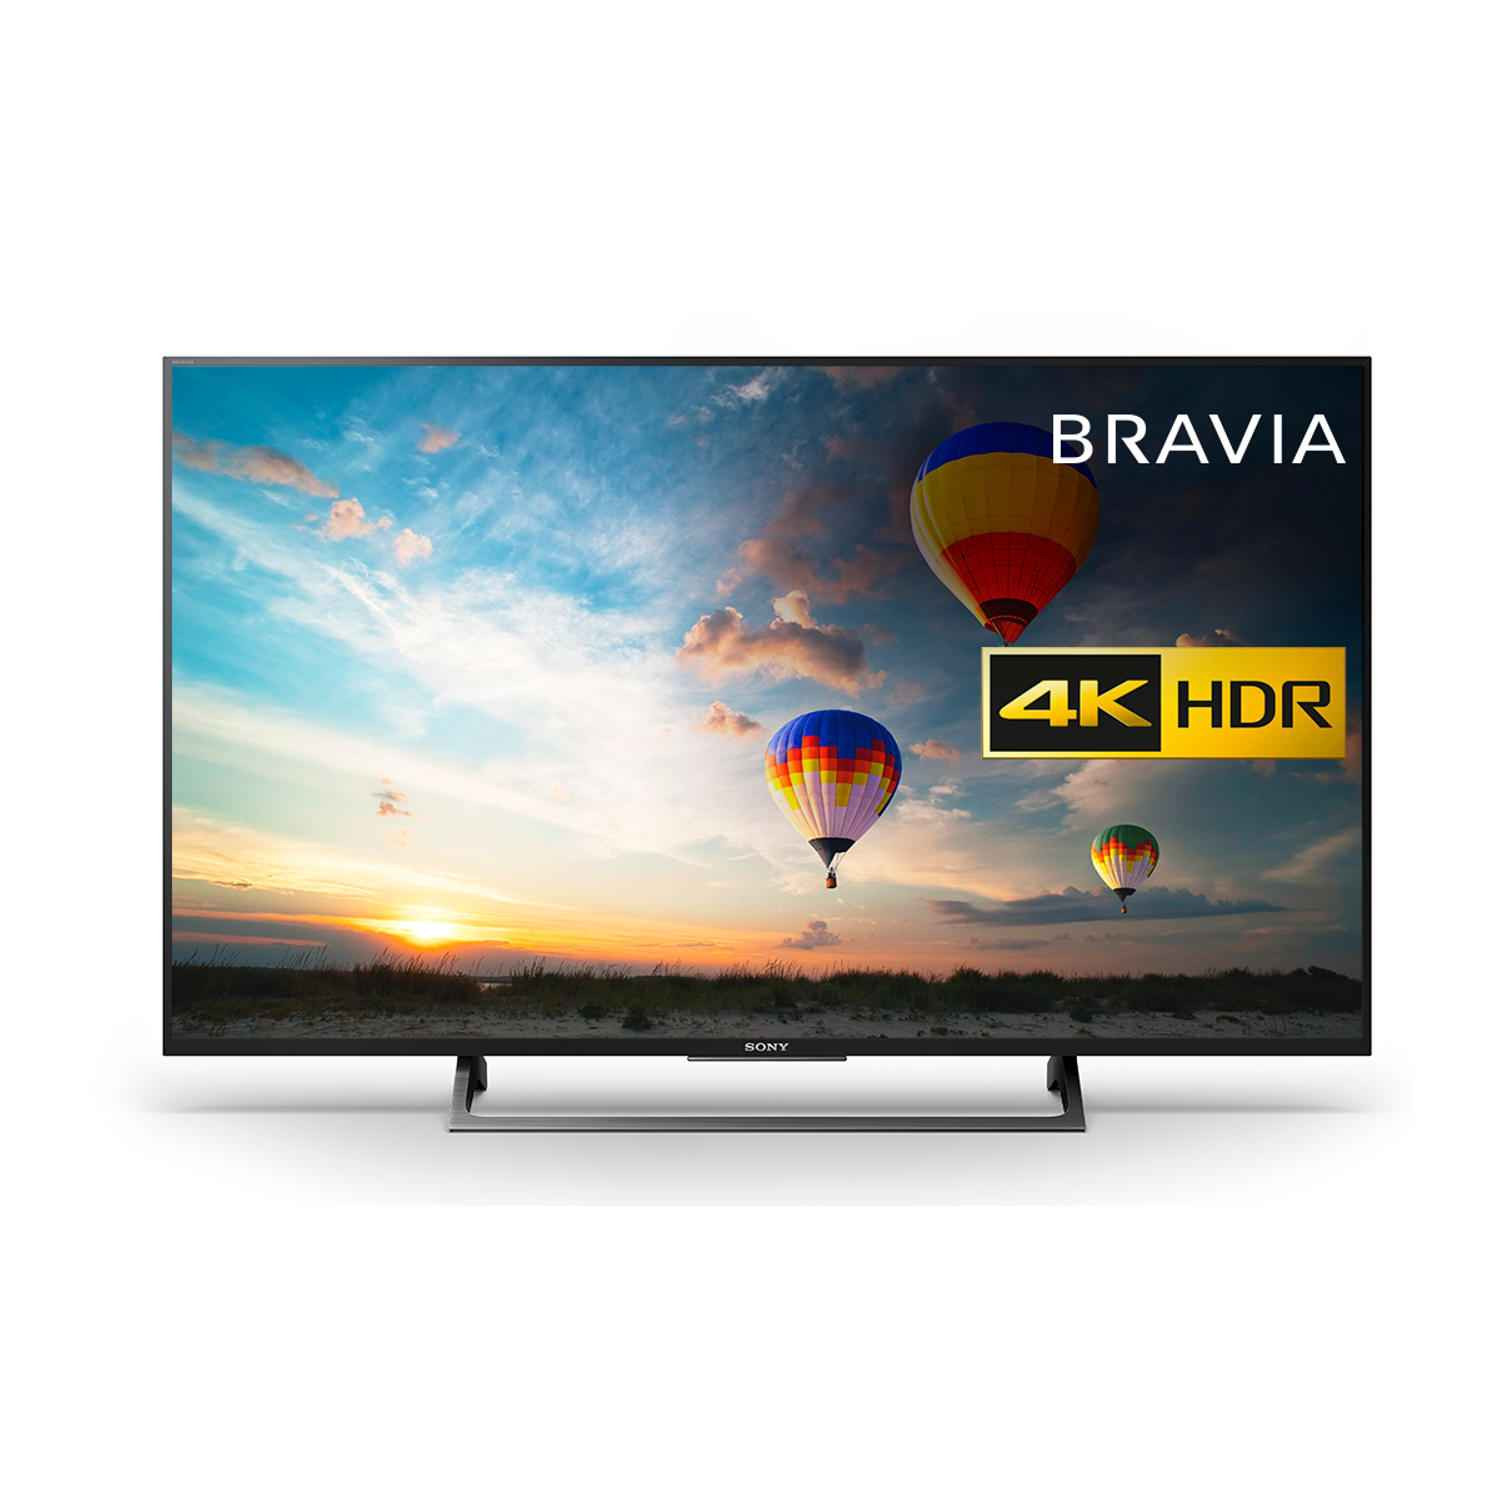 "Tv 60 Pulgadas 4k Arriba sony Bravia 43"" 4k Hdr Uhd Smart Tv – Kd43xe8005bu Of Tv 60 Pulgadas 4k Magnífico ソニー初の曲面4kテレビ Bravia S90 発表。サムスンやlgに続く Engad 日本版"